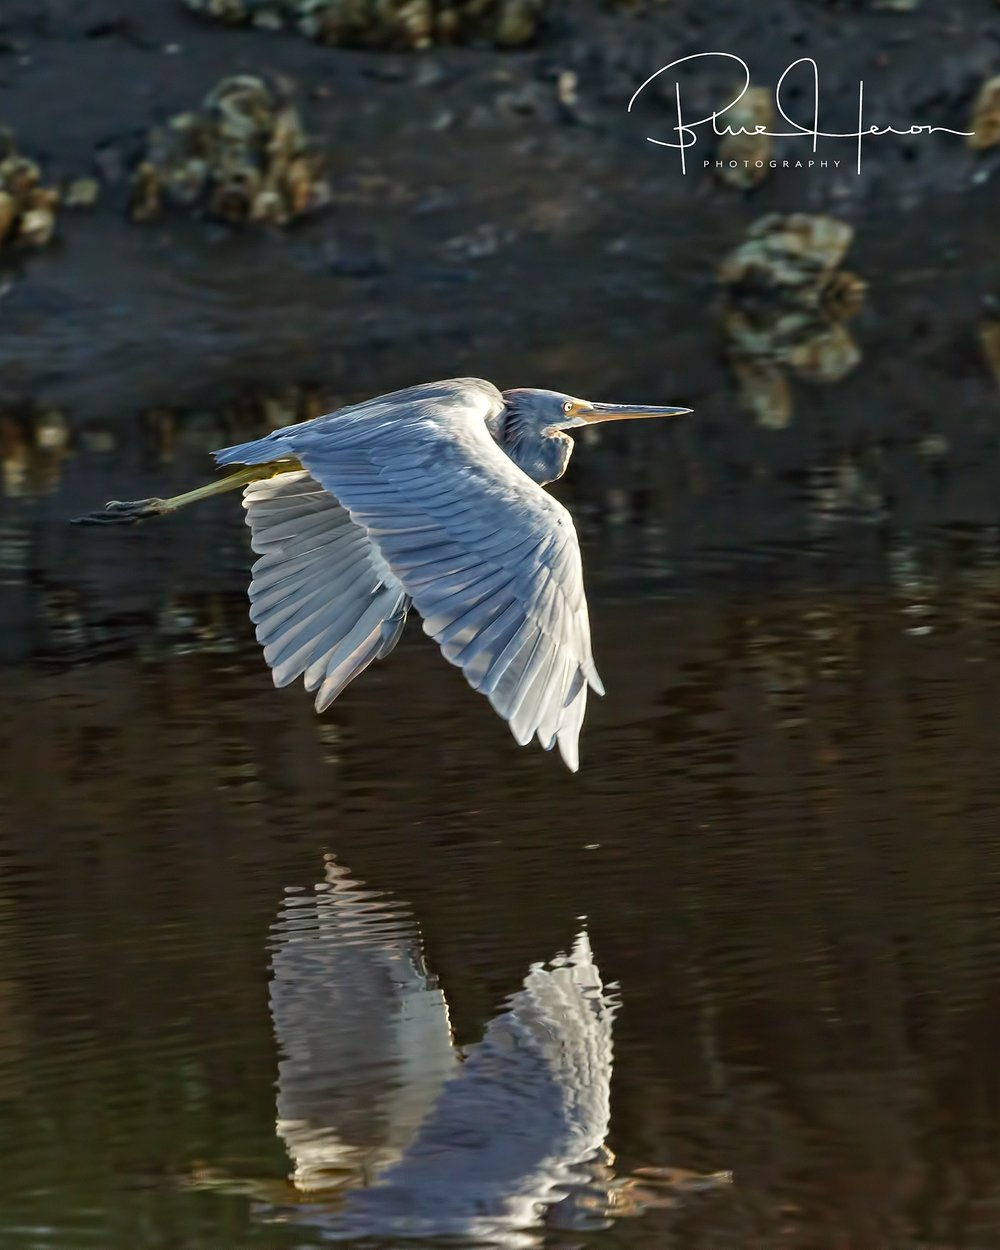 Fleeting capture of a Tricolored Heron leaves me blue..